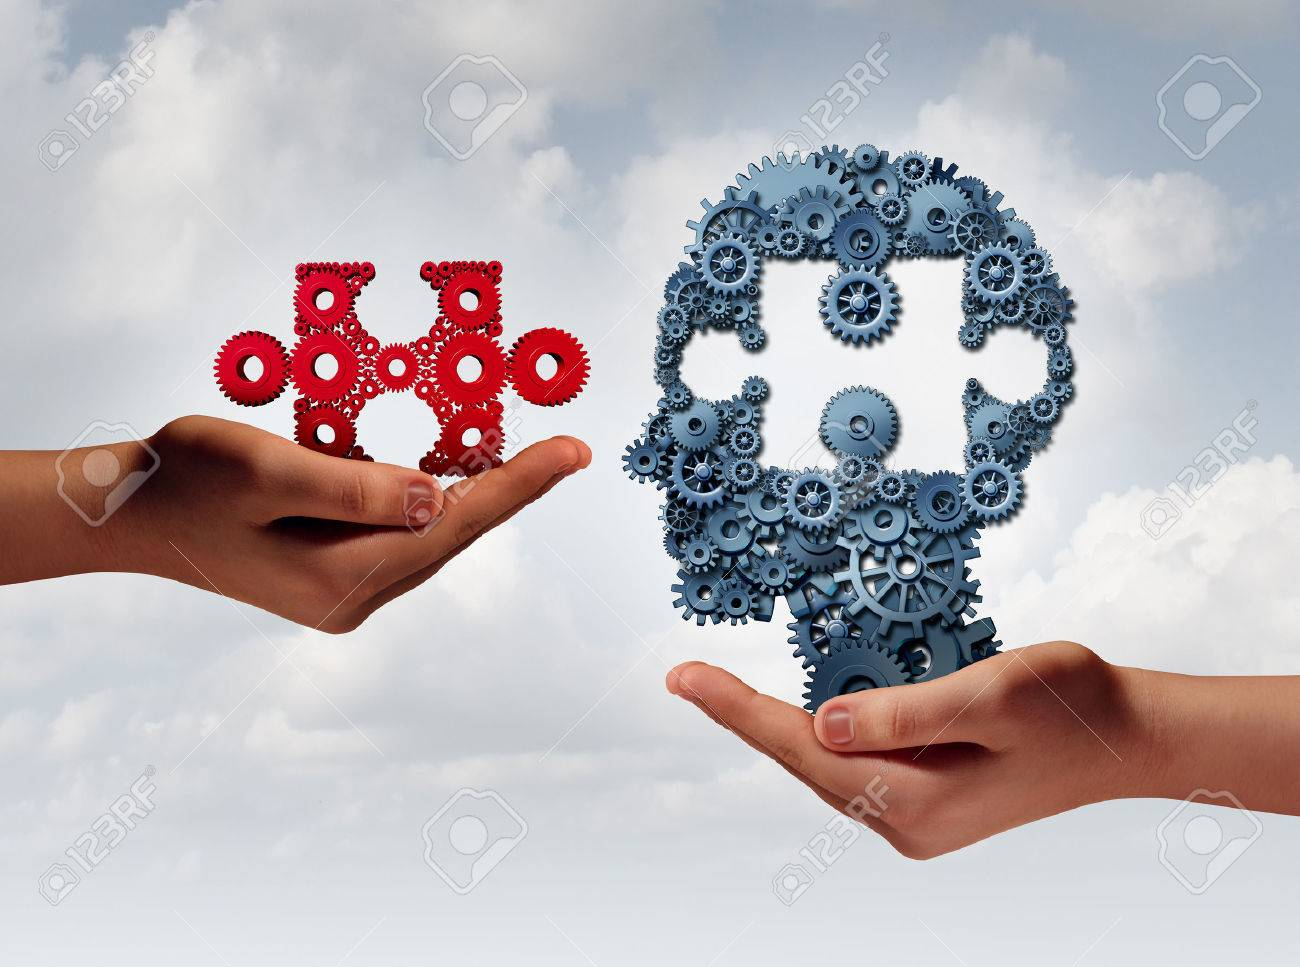 Concept of business training and skill development symbol as human hands holding a puzzle piece and gears shaped as a head as a technology or training metaphor with 3D illustration elements. Standard-Bild - 56997803